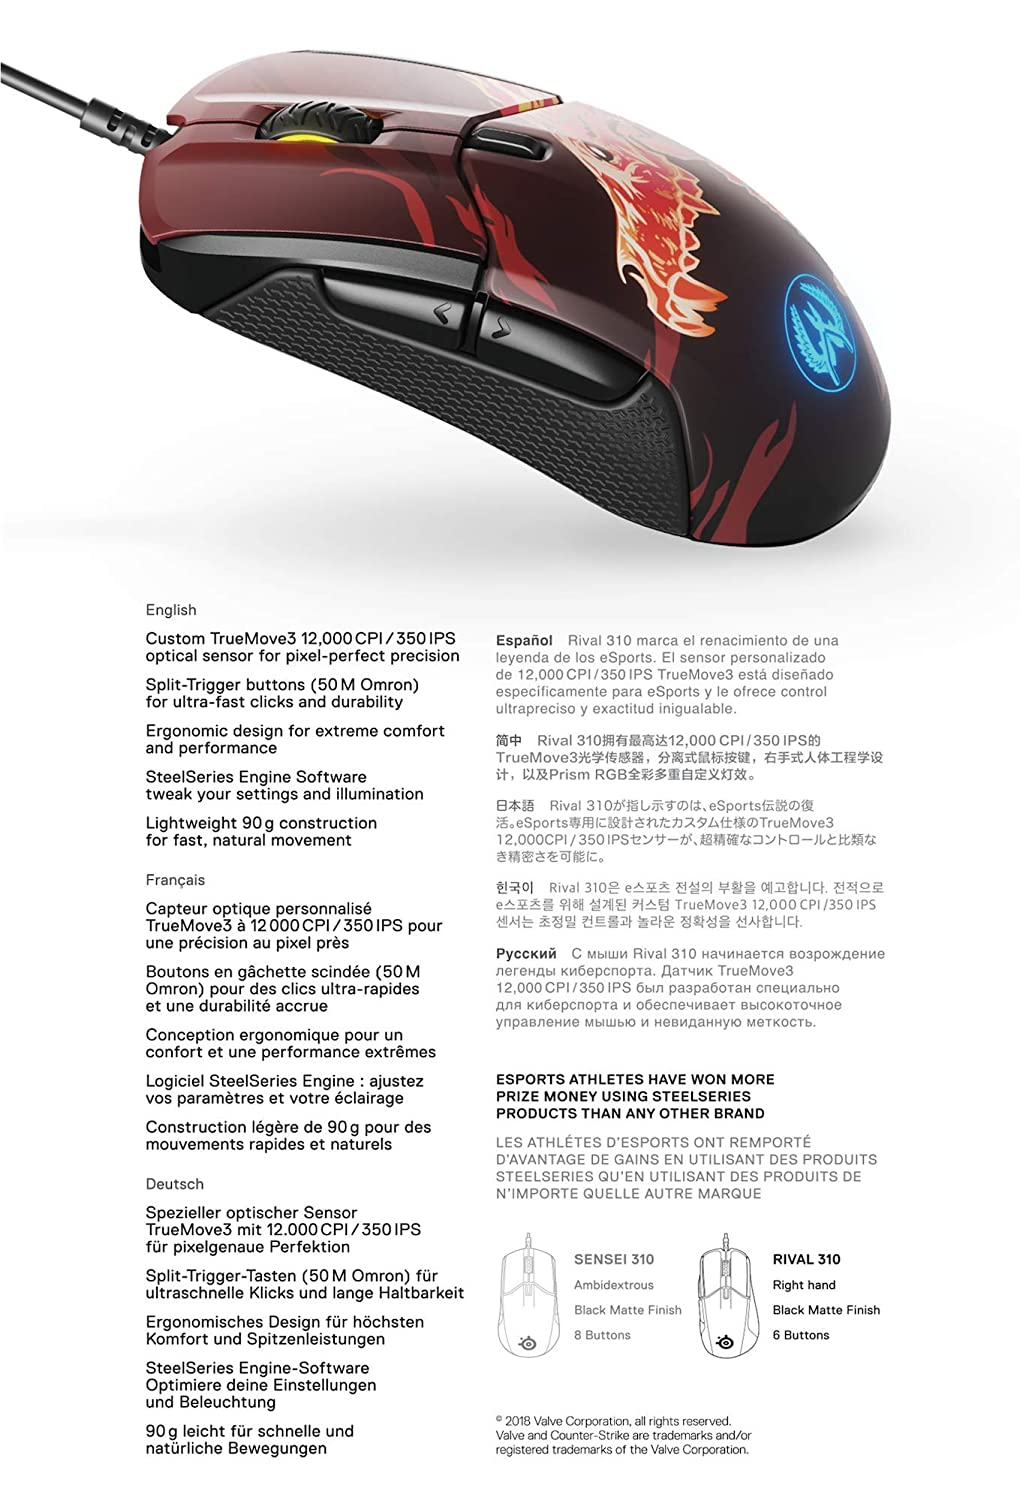 Steelseries Rival 310 Optical Gaming Mouse Rgb Illumination 6 Votrr Buttons Rubber Sides On Board Memory Csgo Howl Pc Video Games